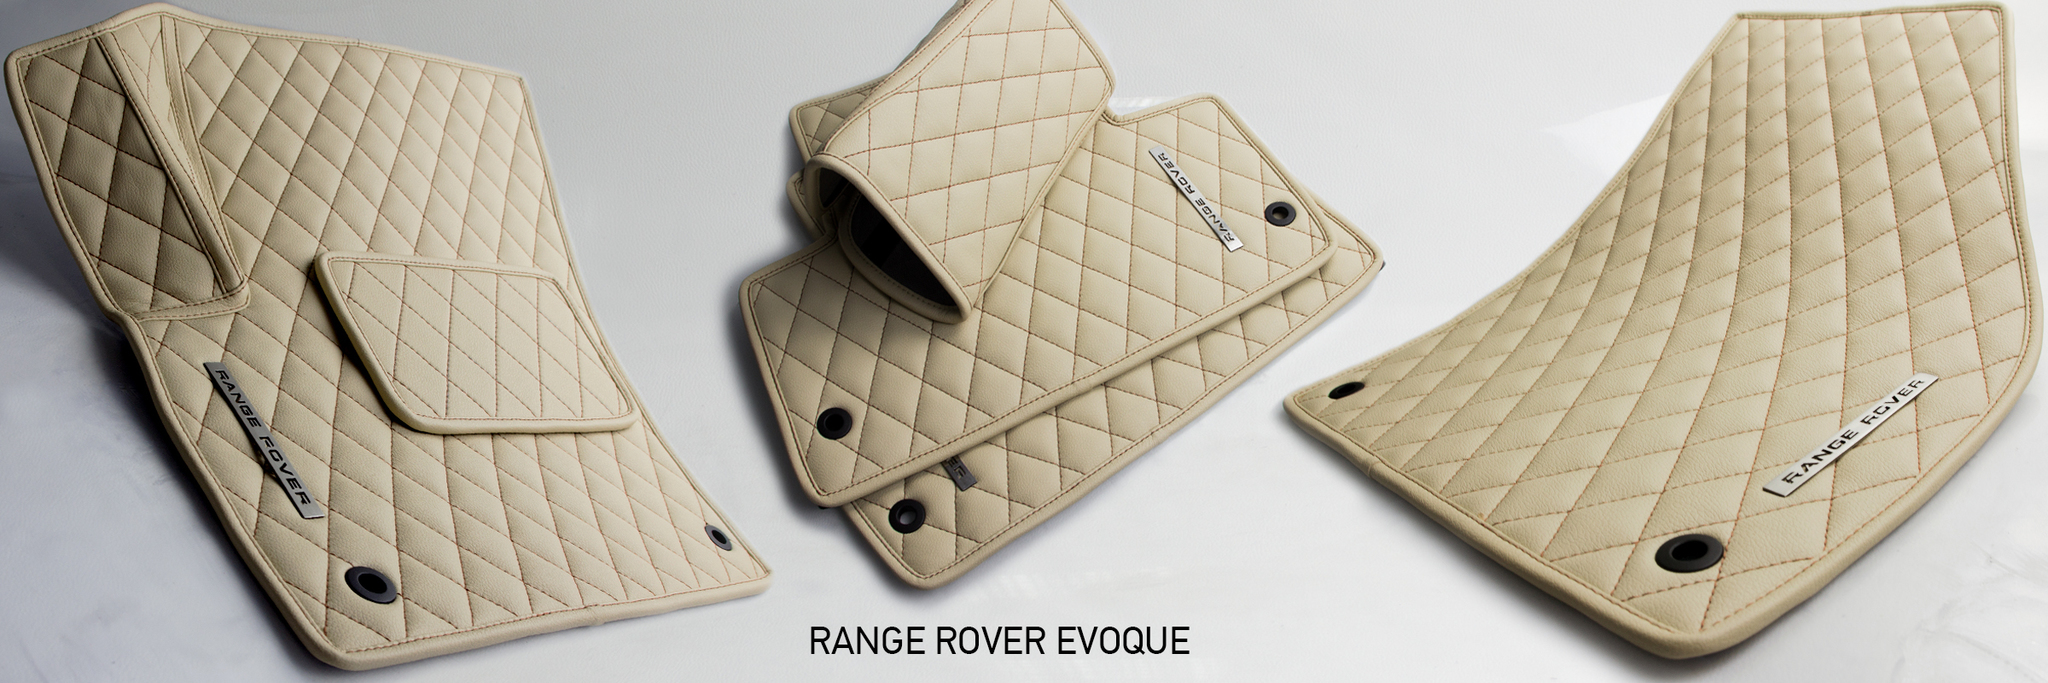 images-products-1-346-232989018-RANGE_ROVER_EVssOQUE.jpg